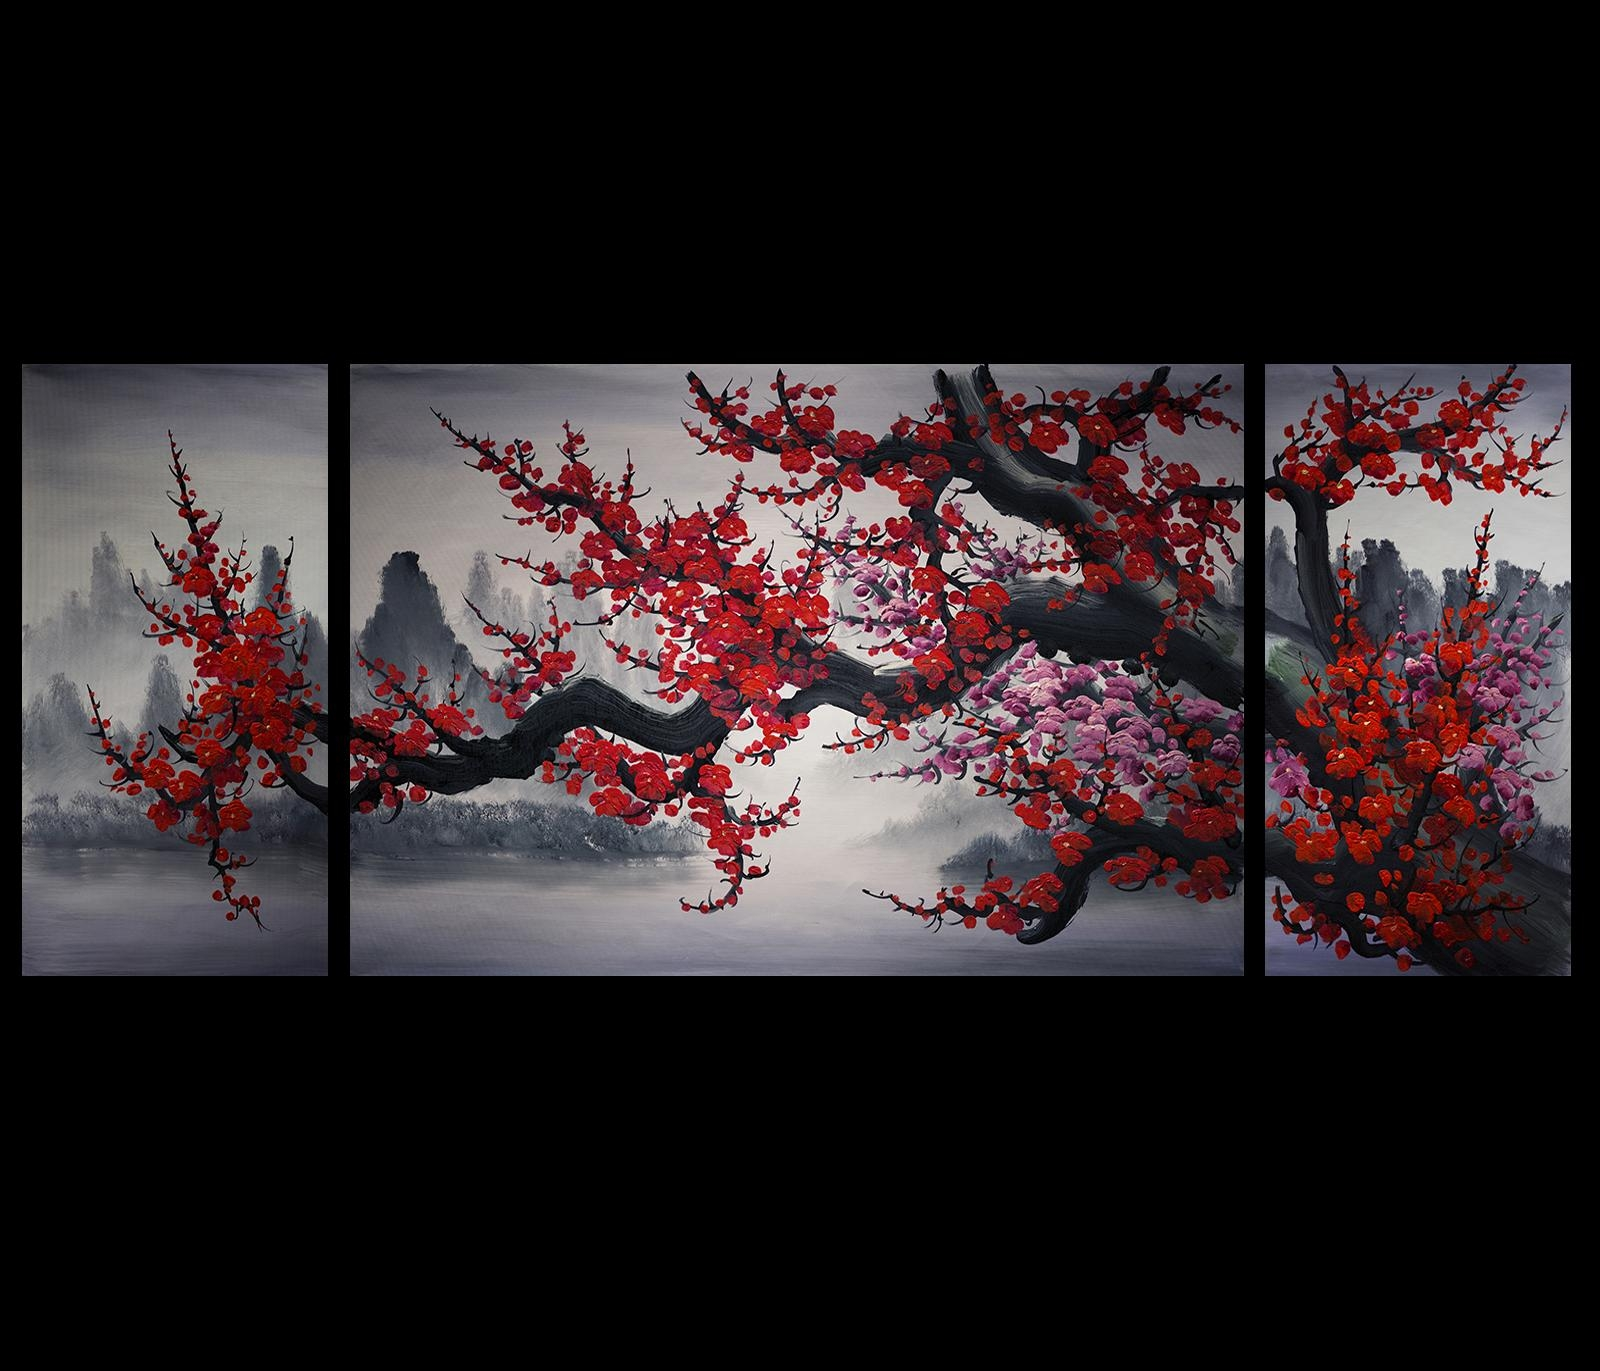 Wall Art Design Ideas: Asian Artistic Chinese Wall Art Painting Within Asian Themed Wall Art (View 3 of 20)